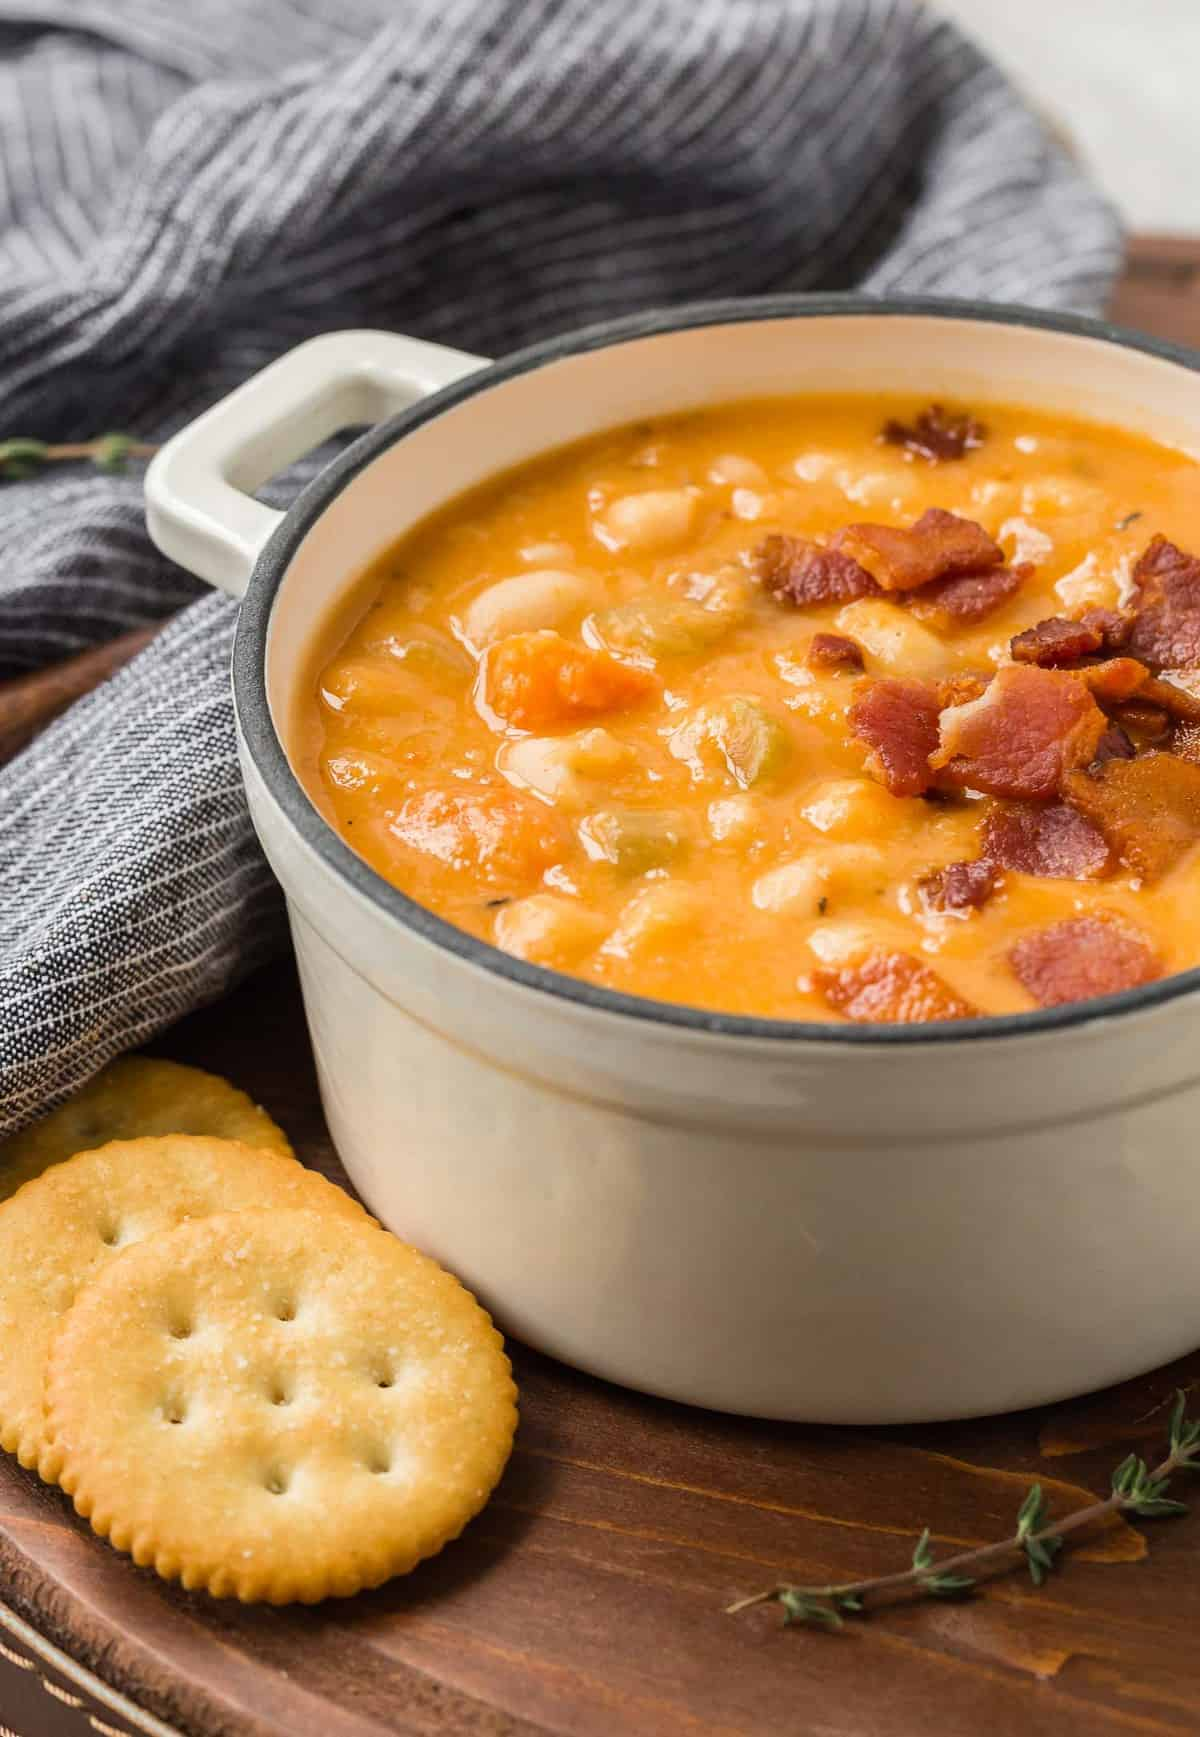 Bean soup on a tray with crackers and fresh thyme.